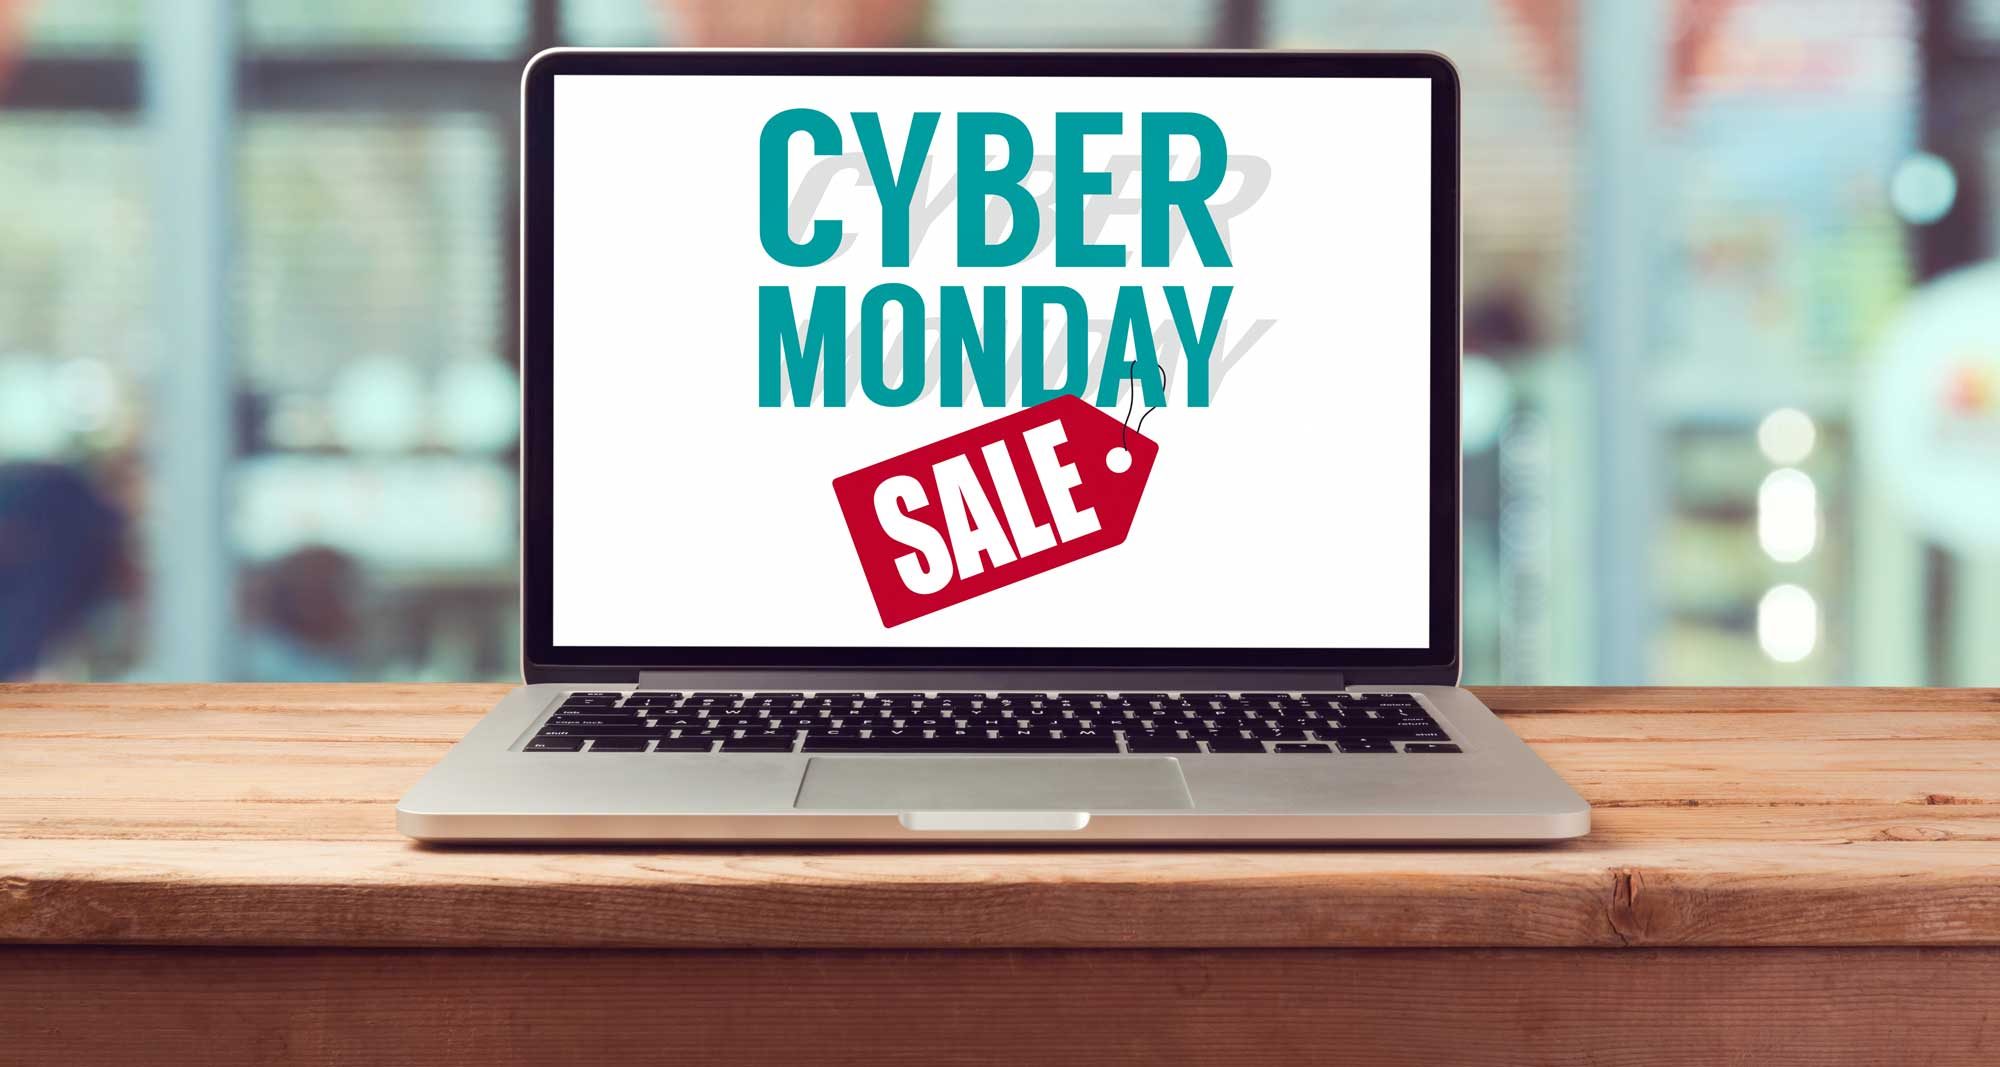 Make Cyber Monday Work For You